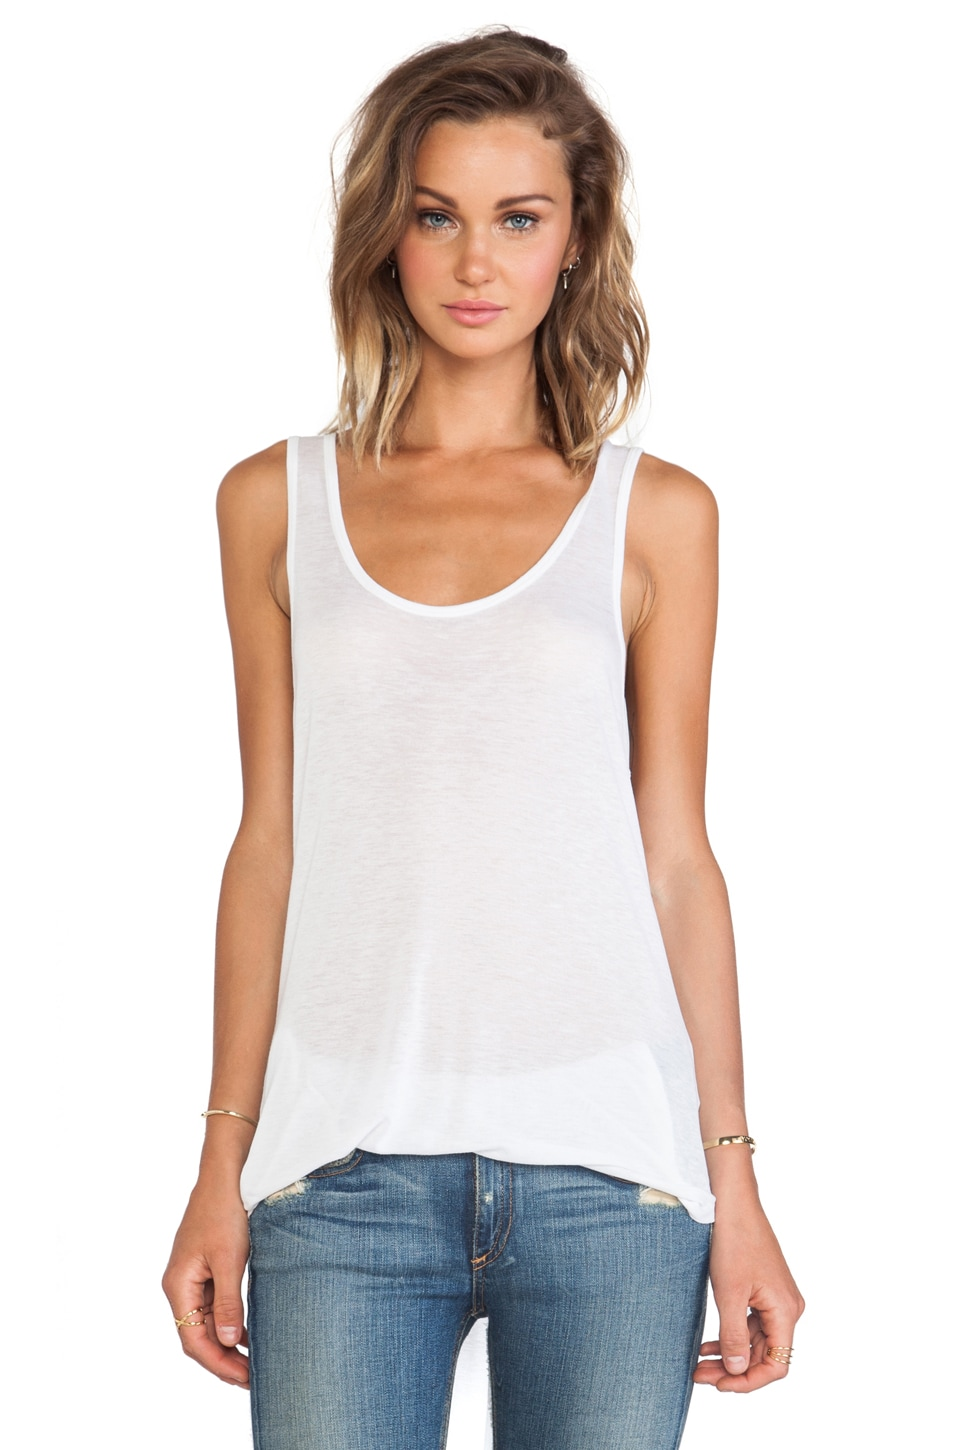 BLK DNM Tank 16 in White